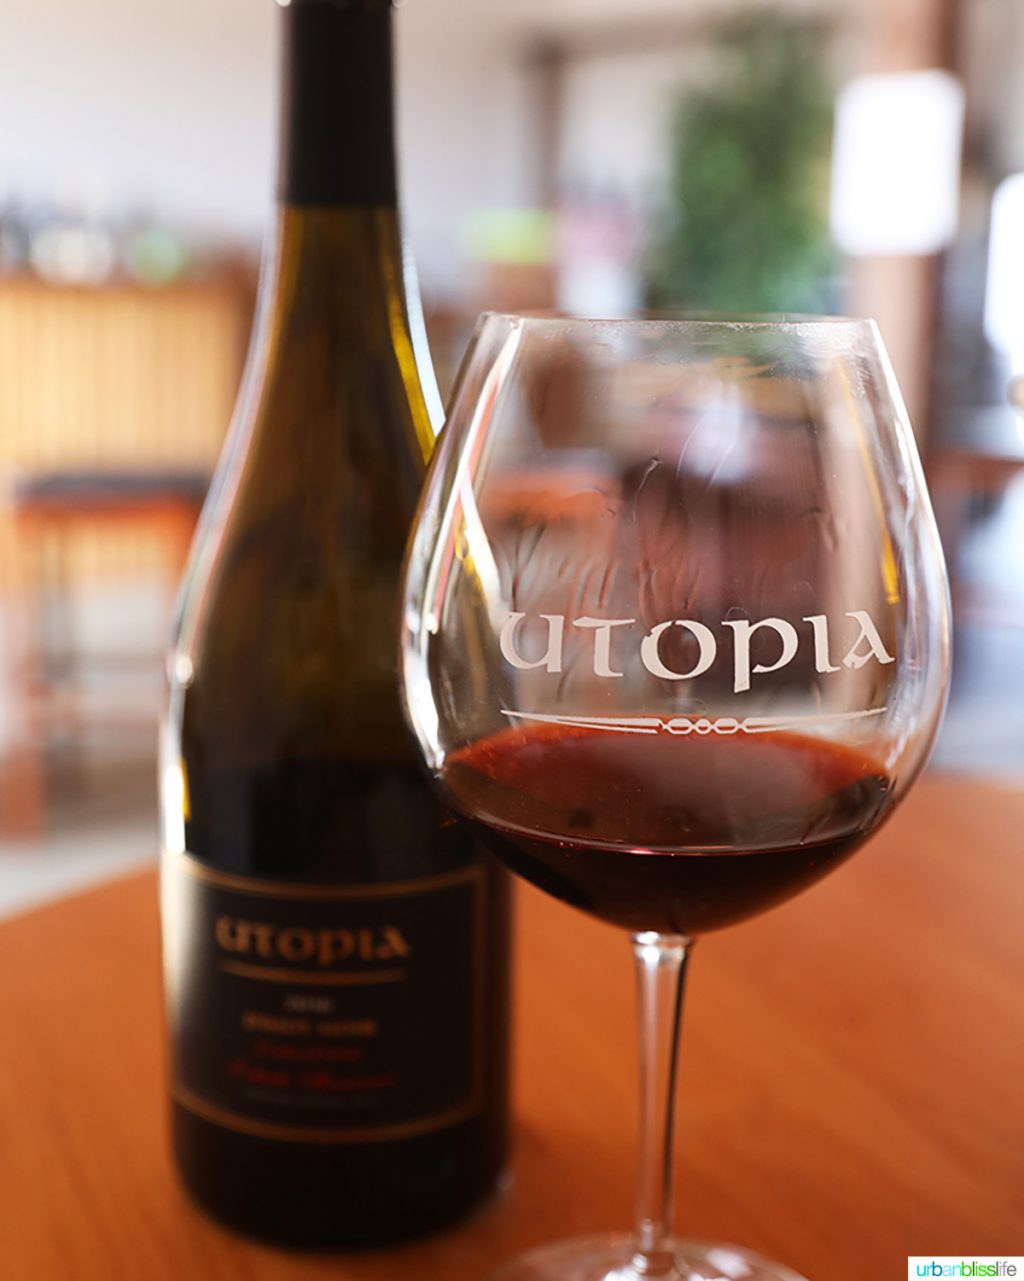 Utopia Vineyard pinot noir